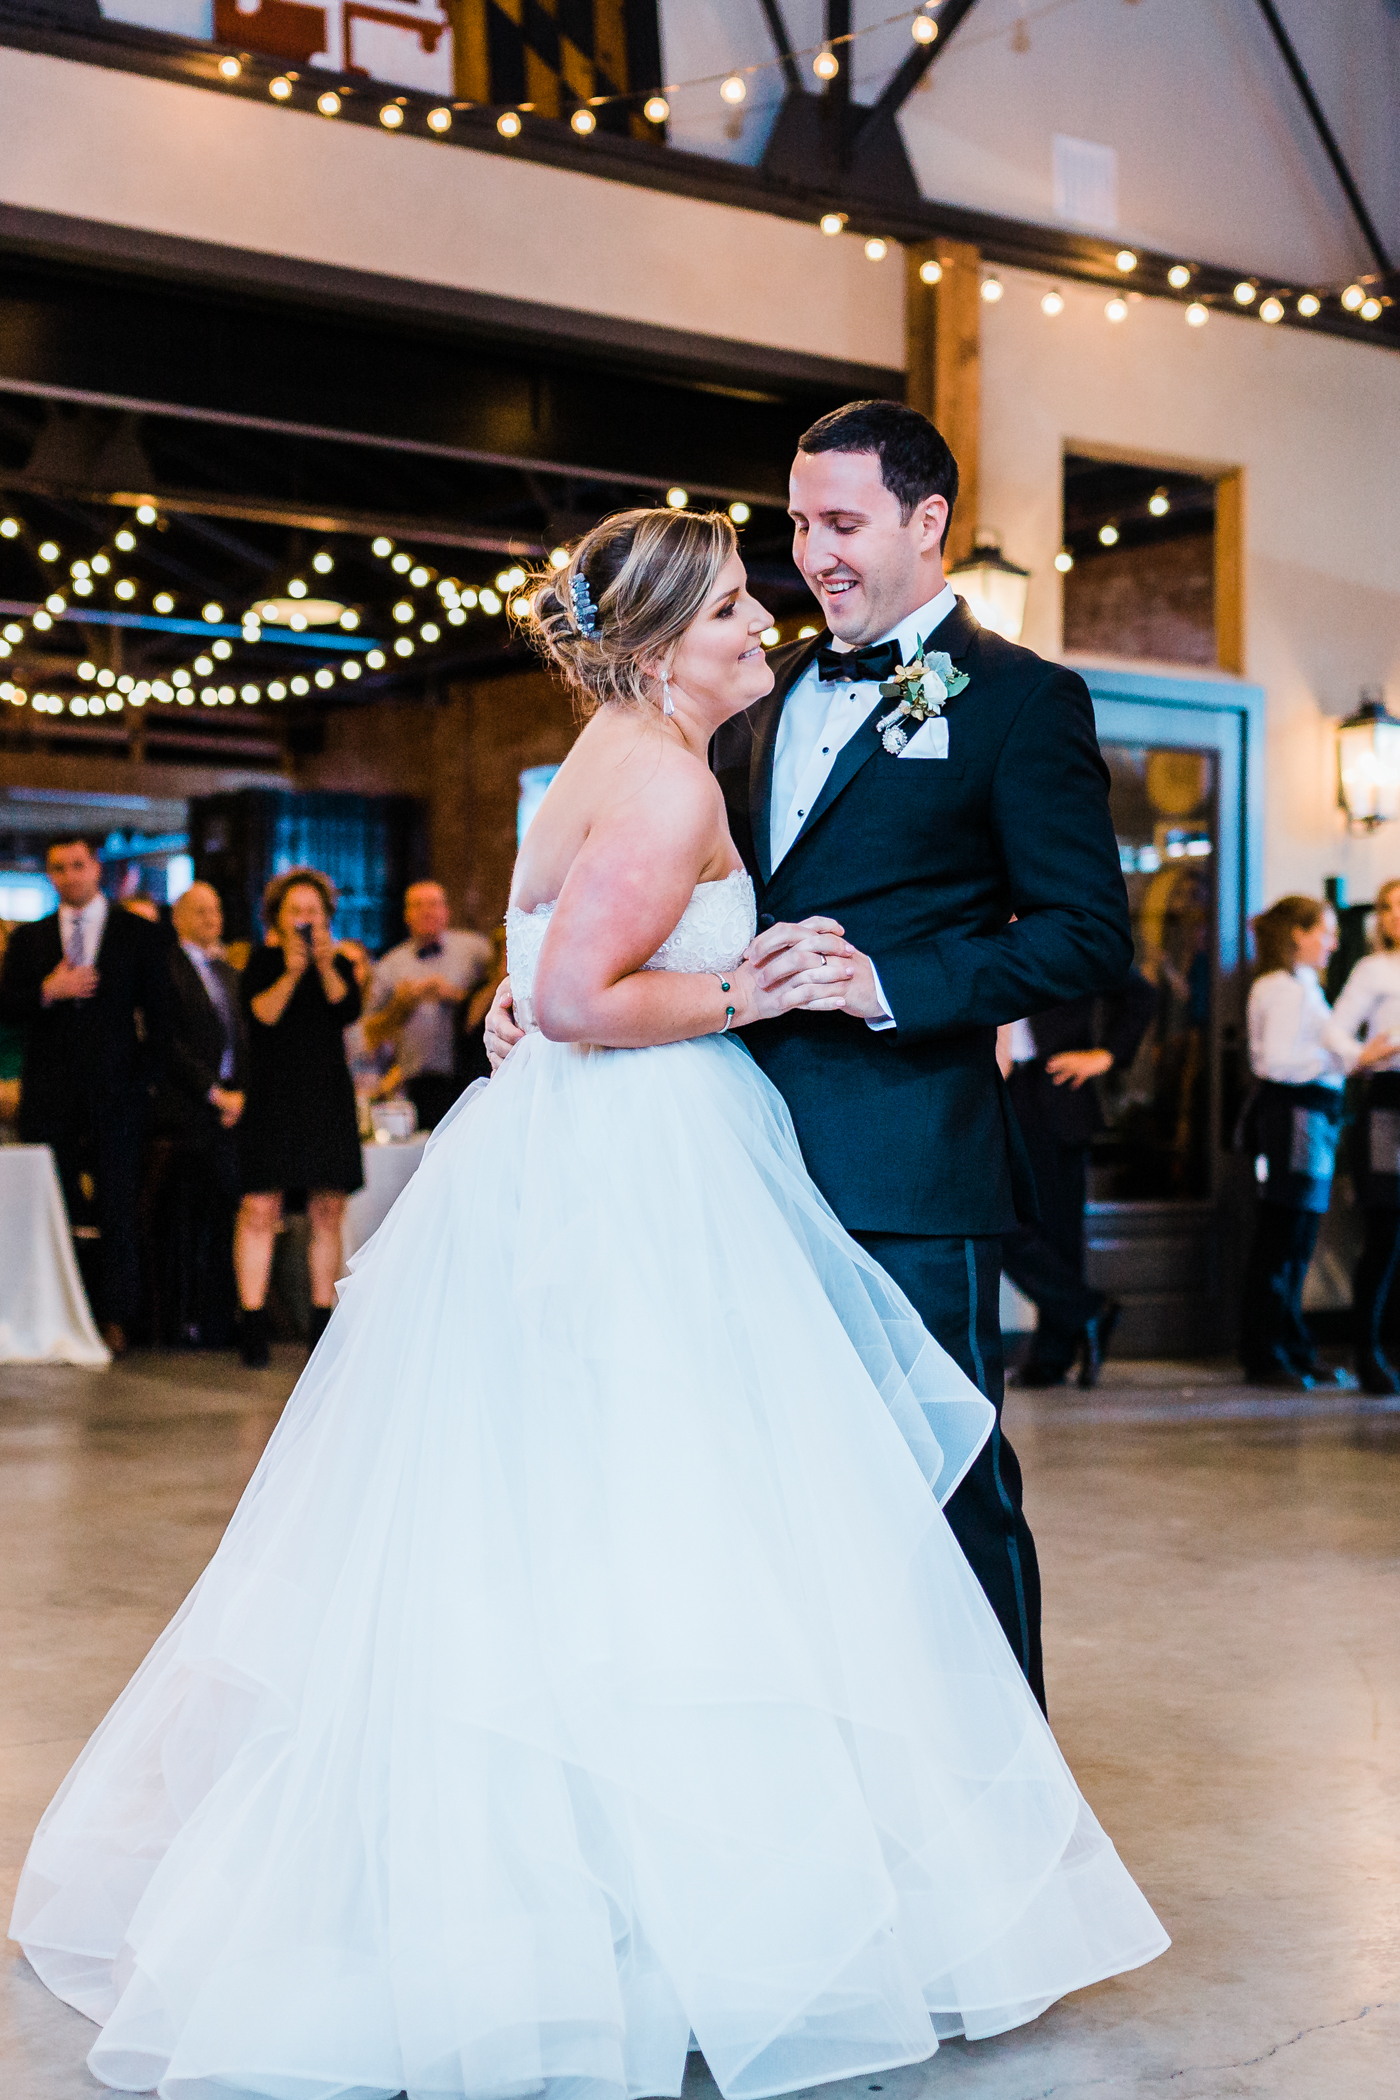 Bride and groom share first dance at reception McClintock distilling - Frederick Maryalnd